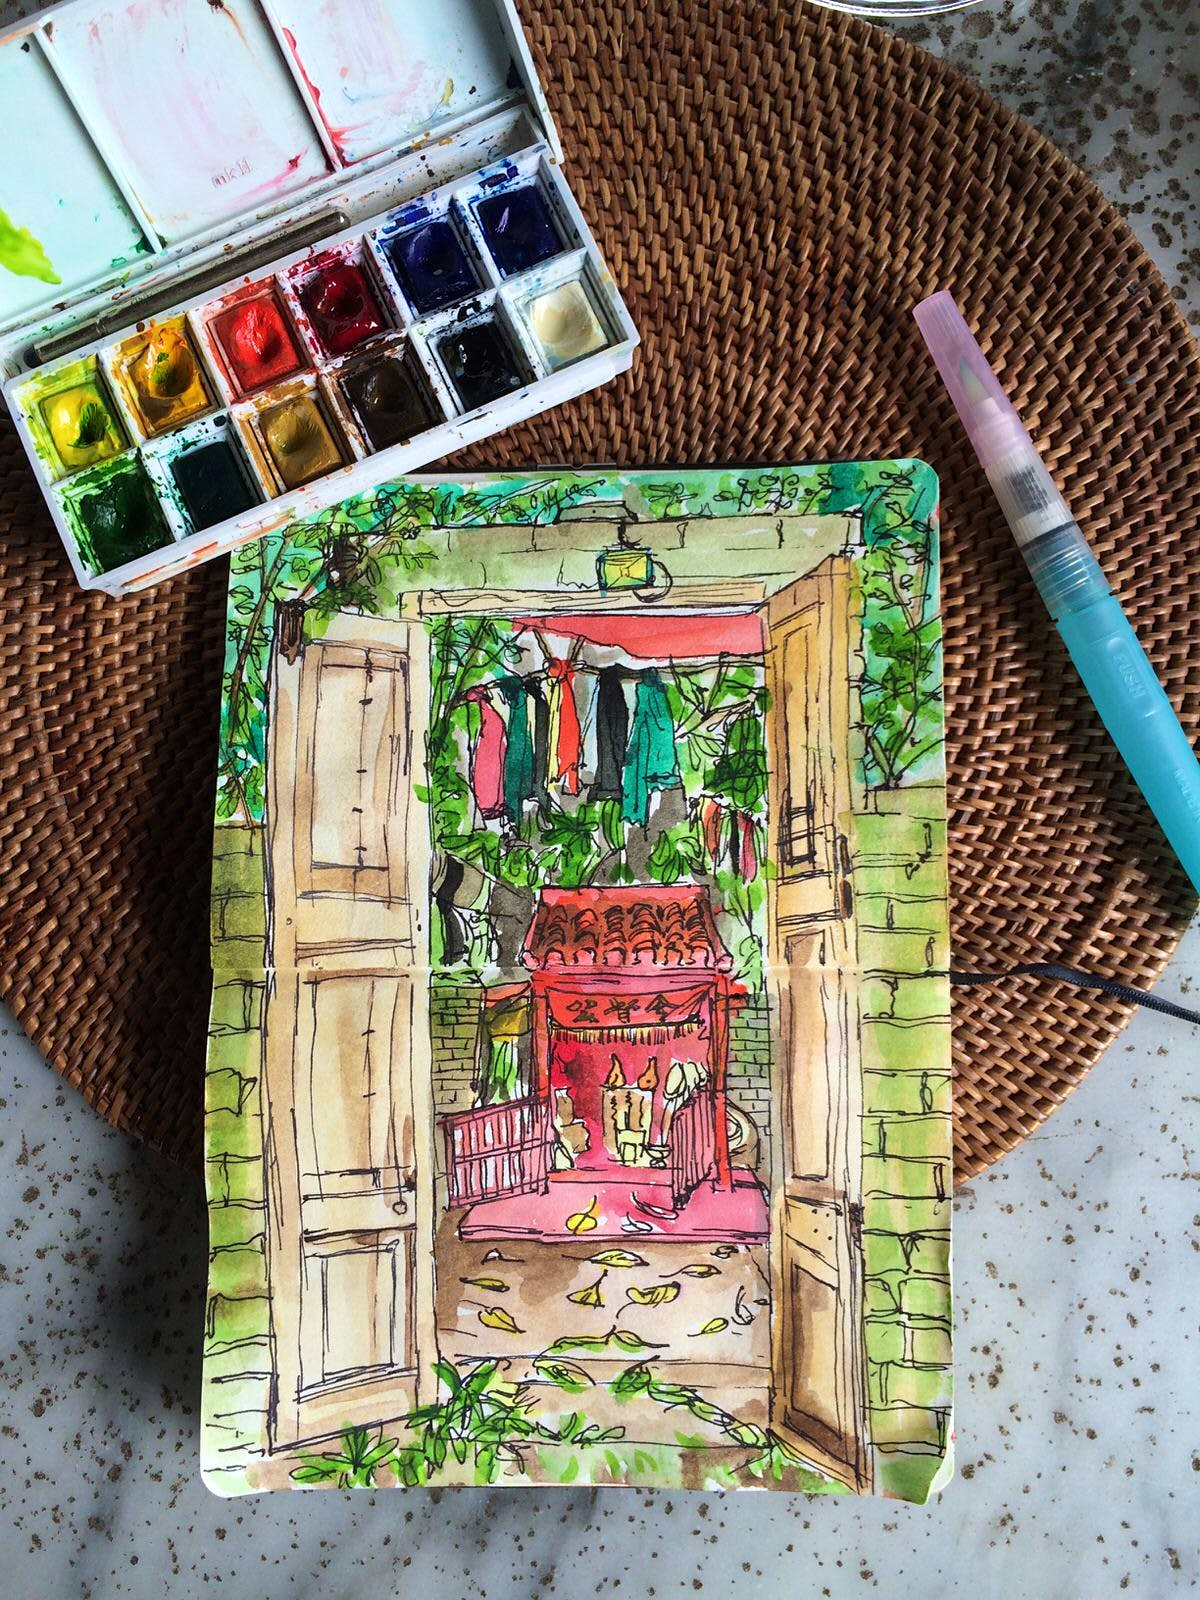 How travel lovers can enjoy urban sketching at home